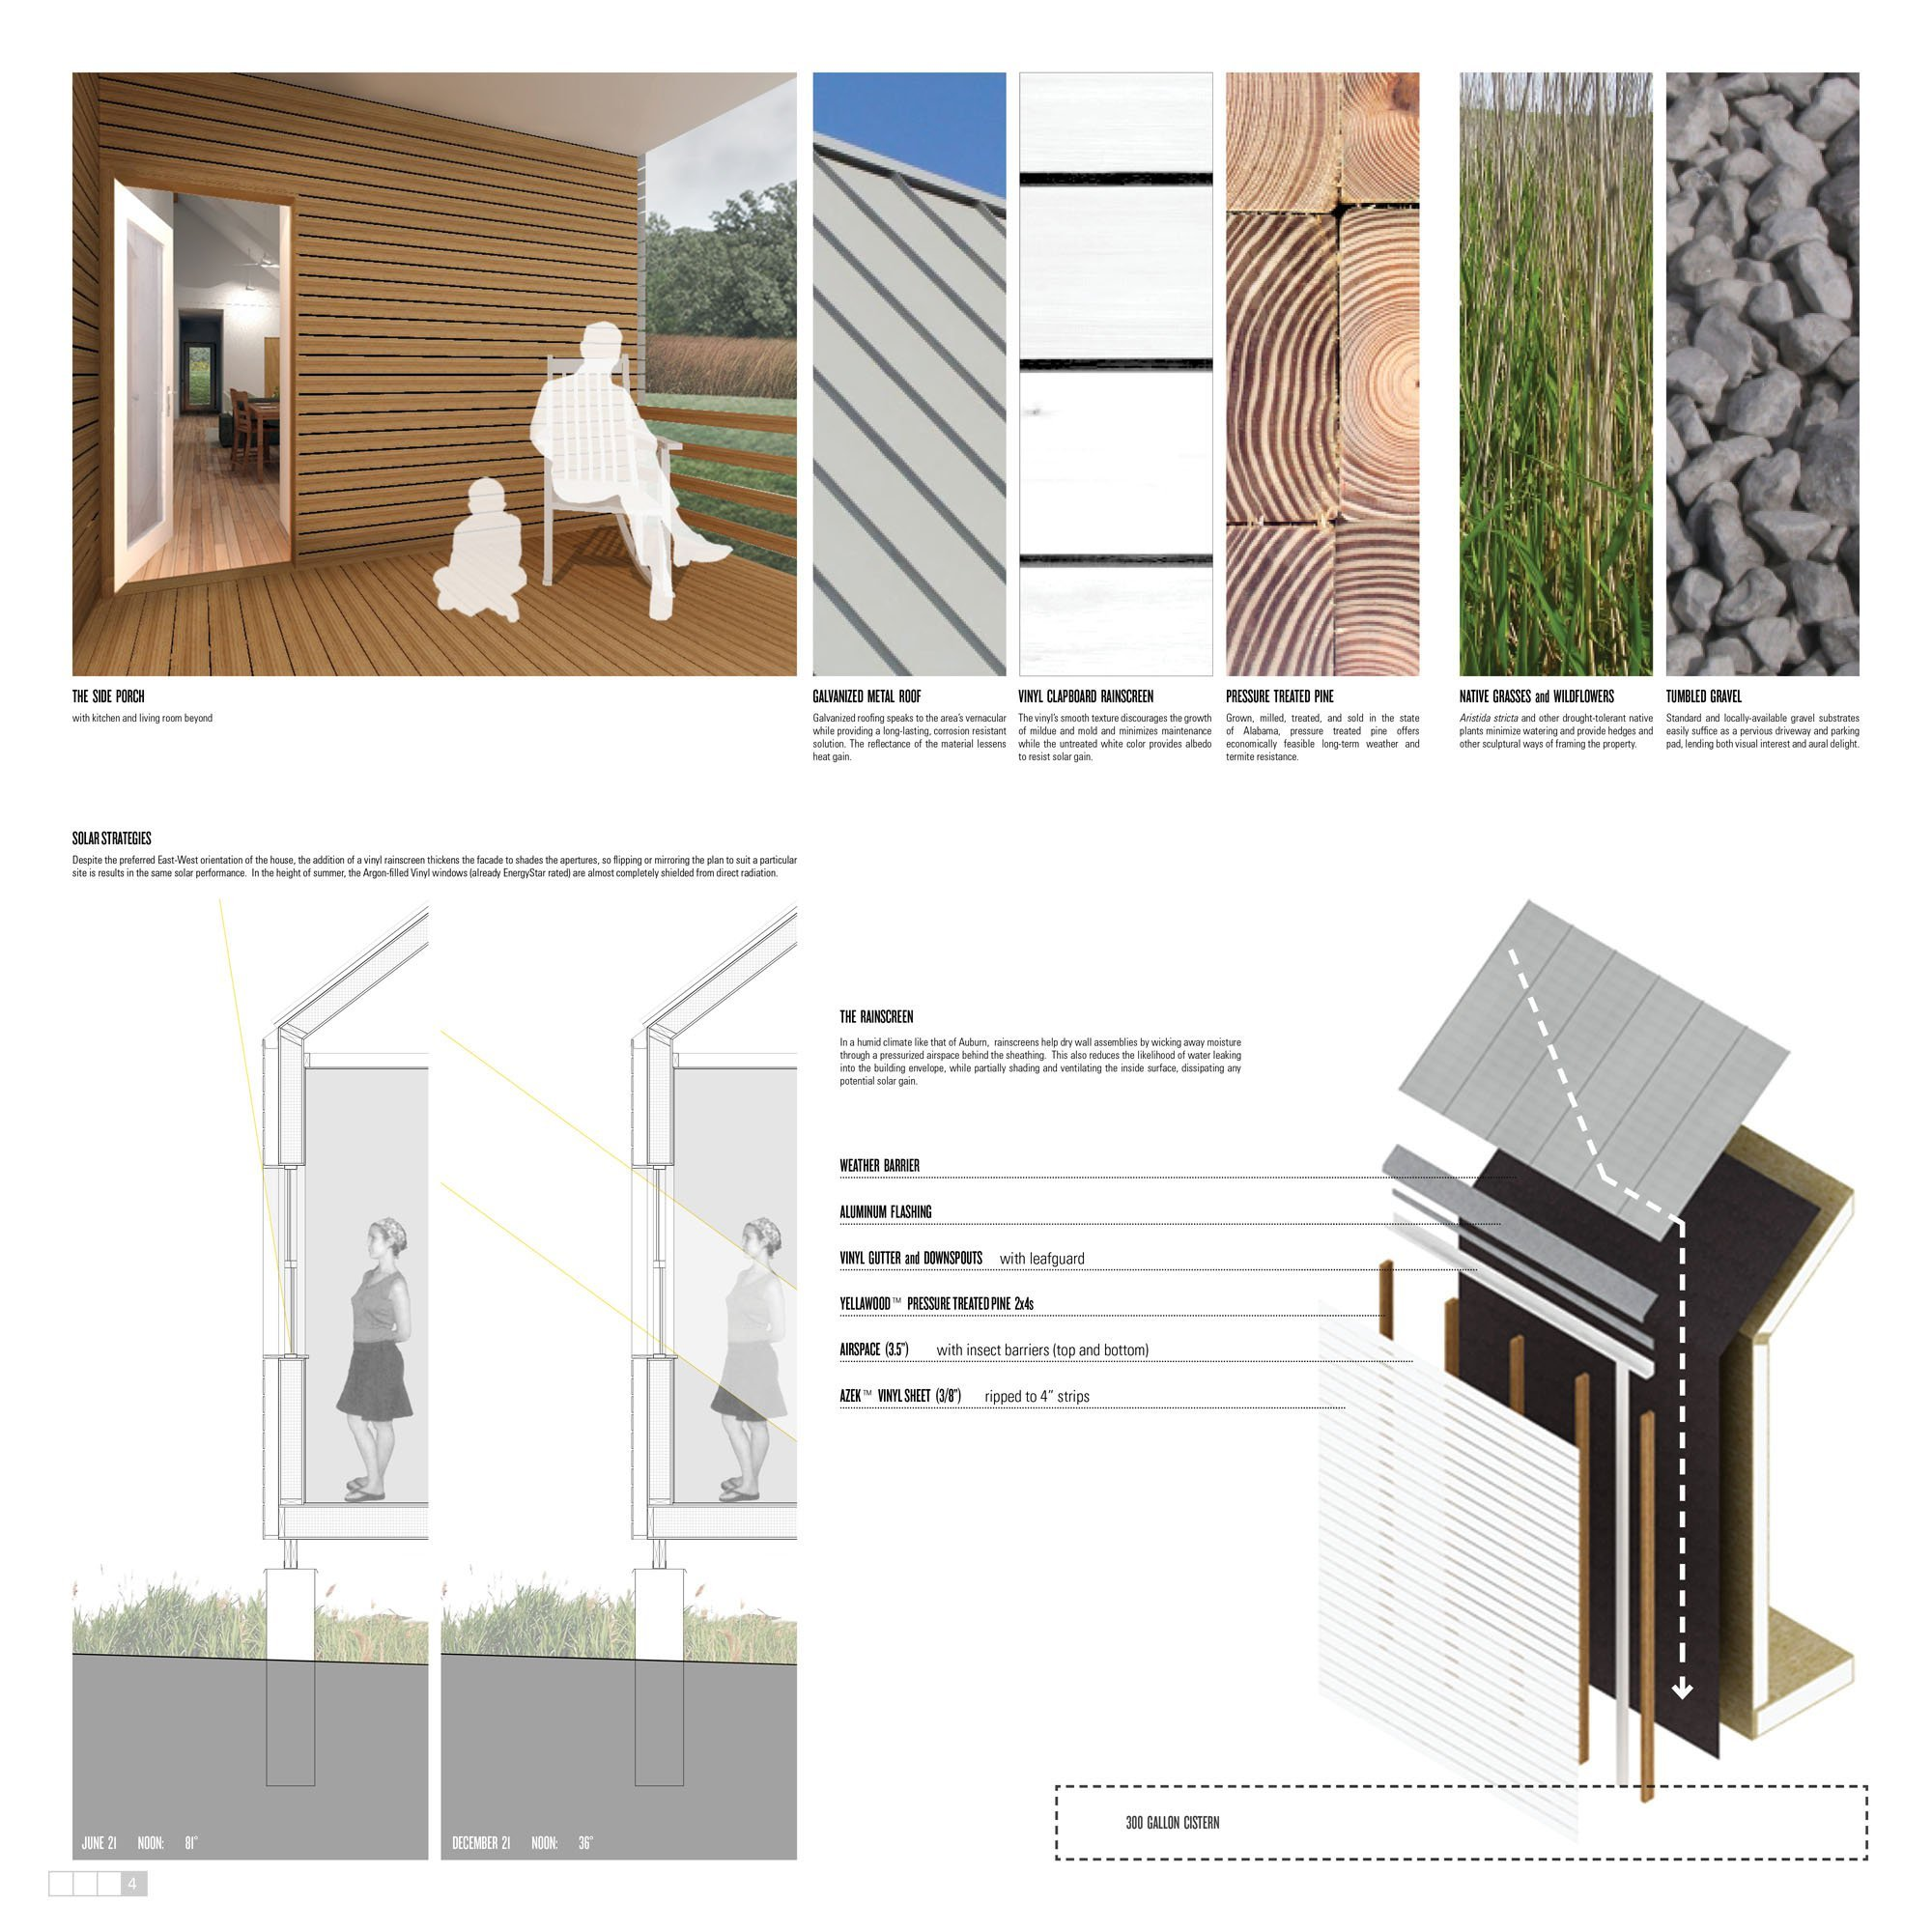 Winners Of Habitat For Humanityu0027s Sustainable Home Design Competition